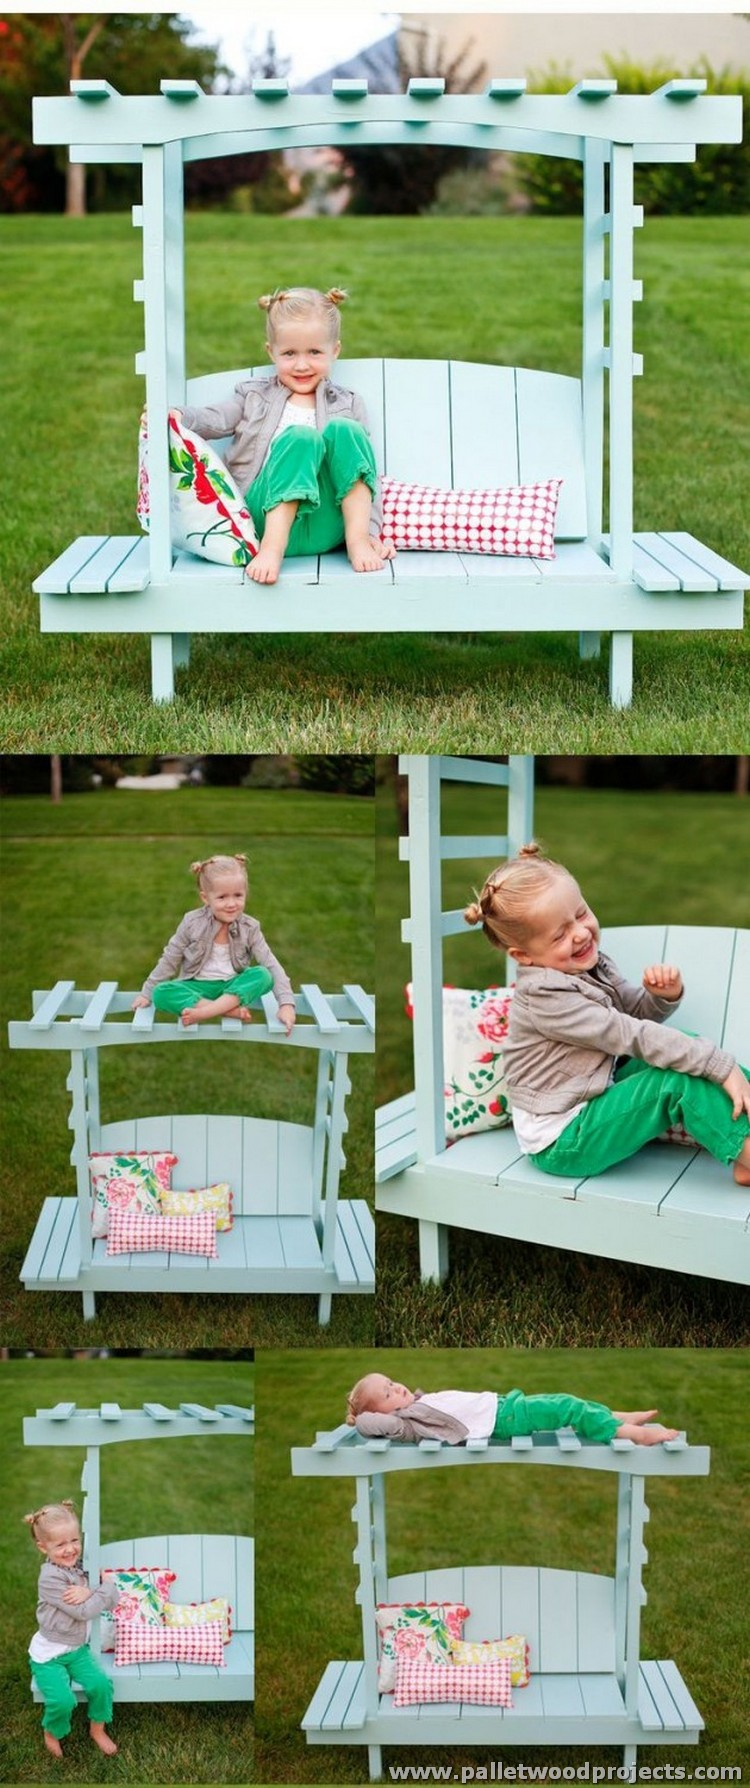 diy pallet projects for kids pallet wood projects. Black Bedroom Furniture Sets. Home Design Ideas